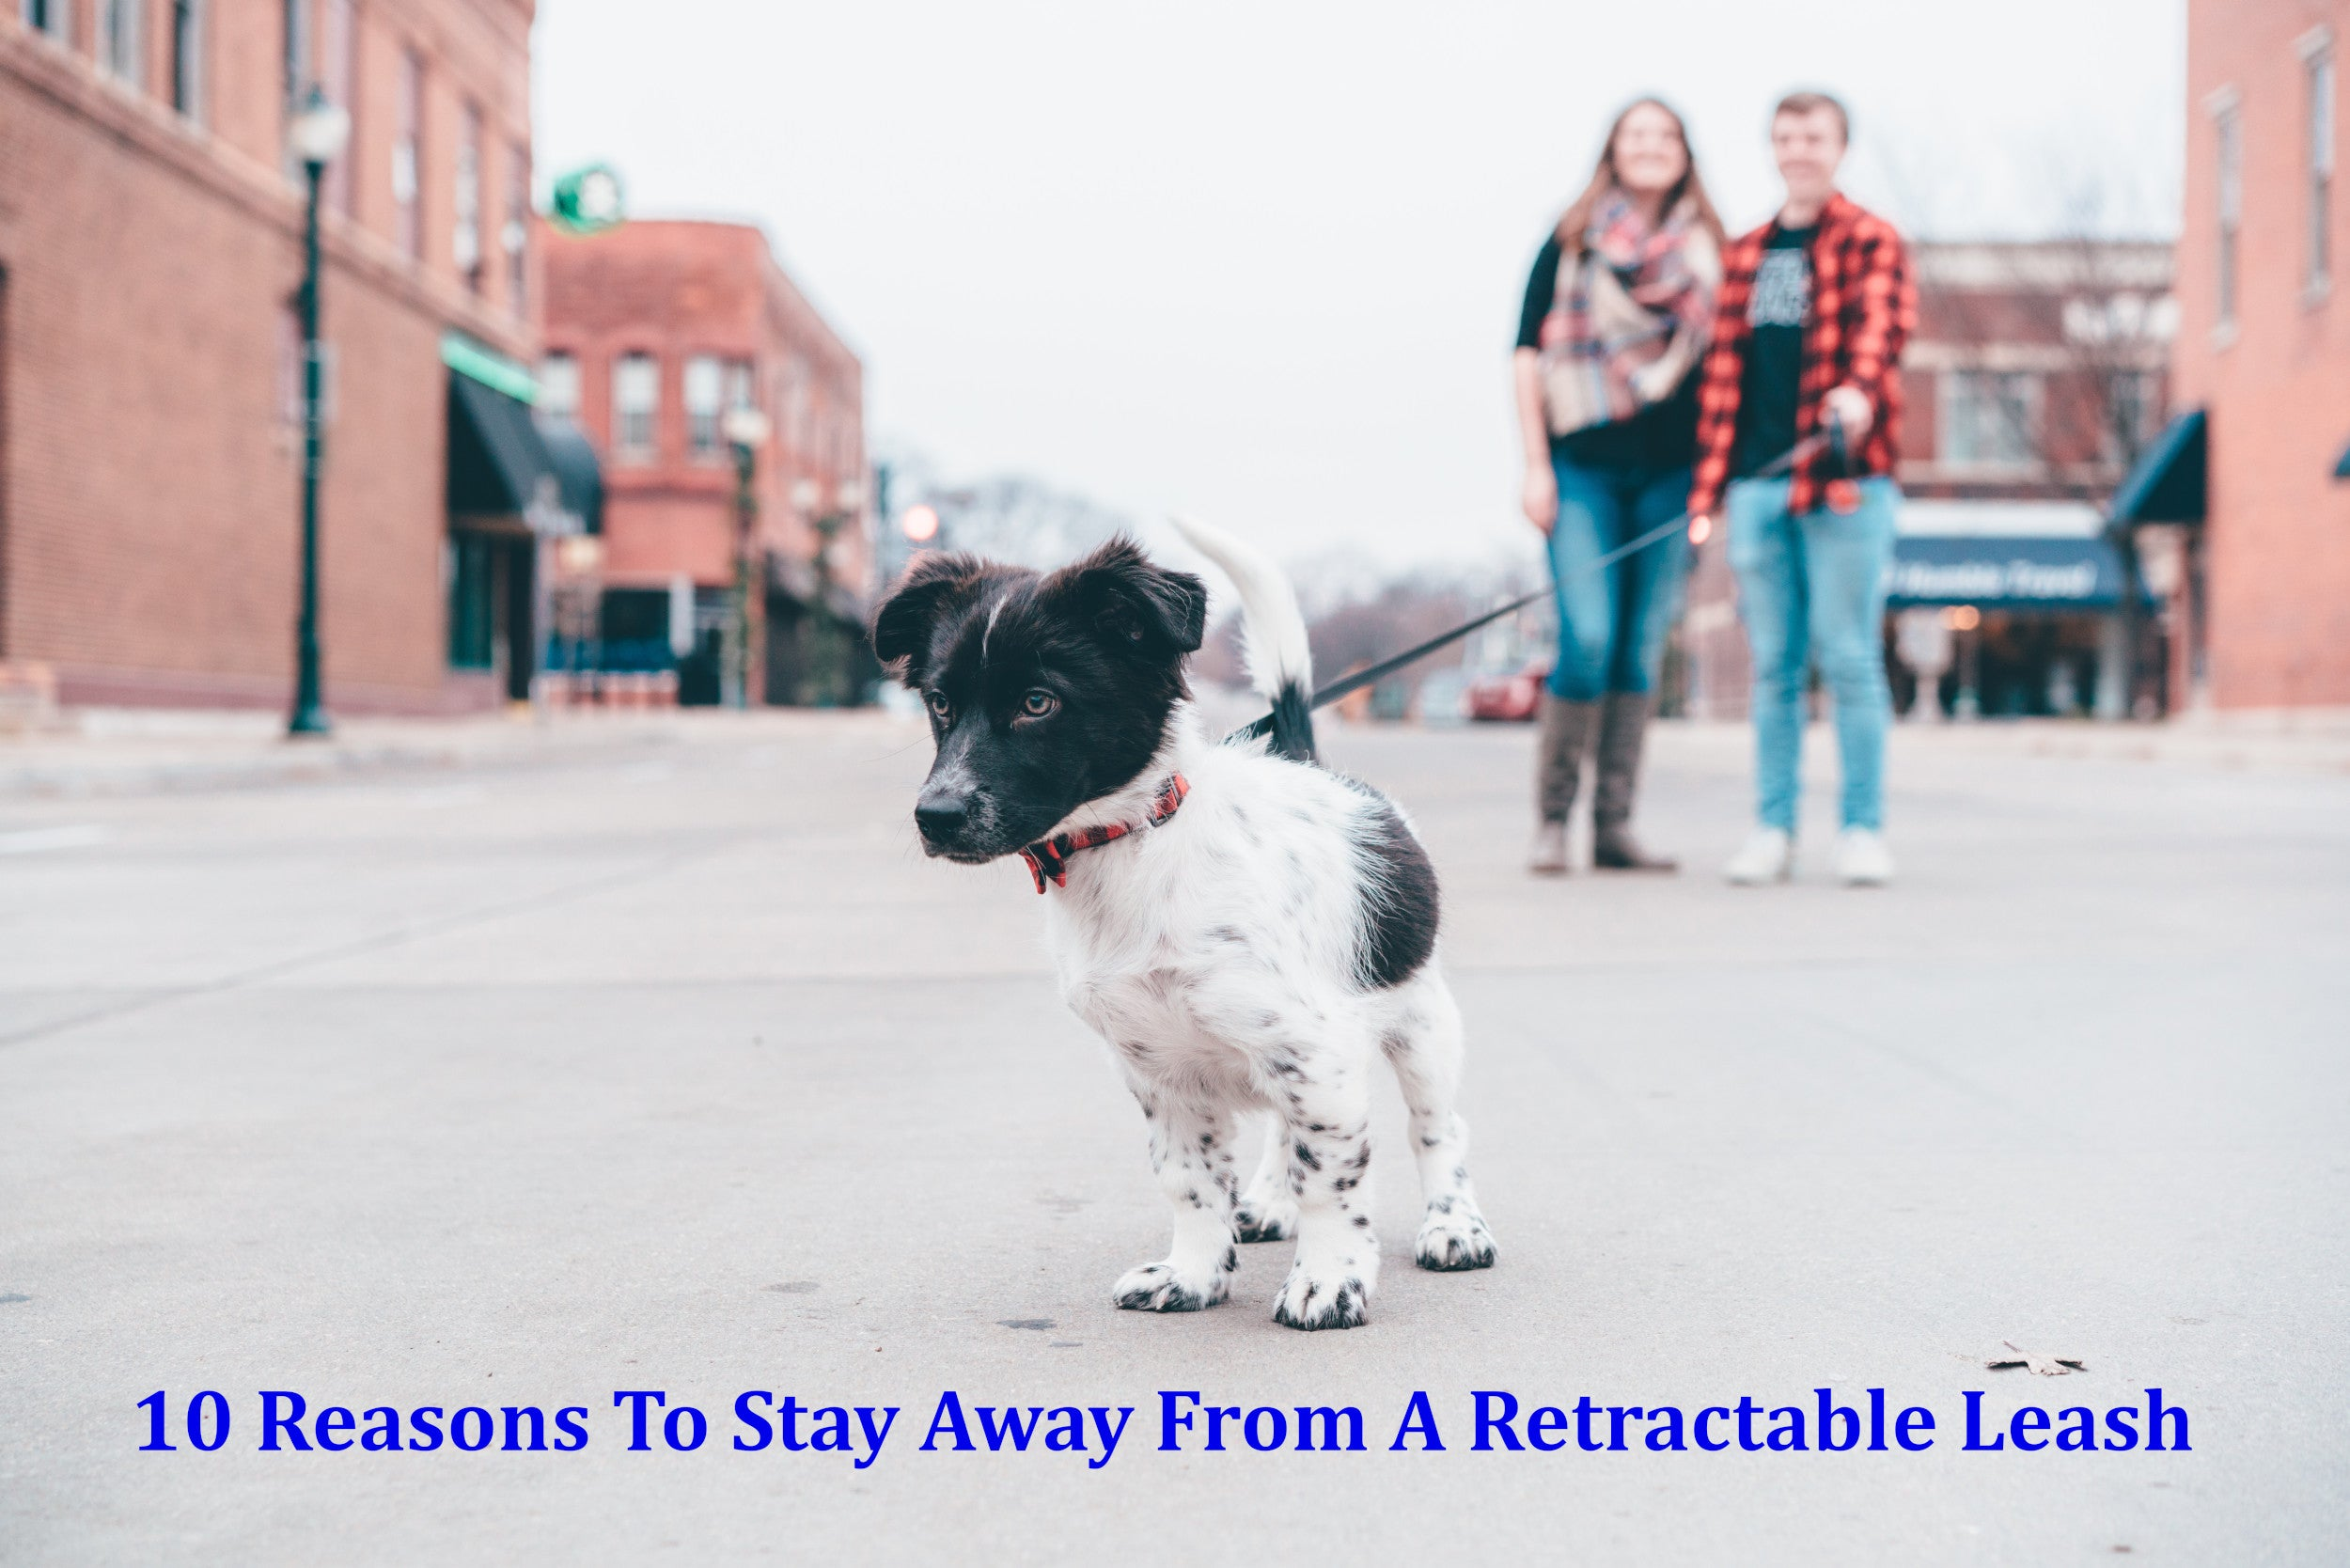 10 Reasons to Stay Away from a Retractable Leash